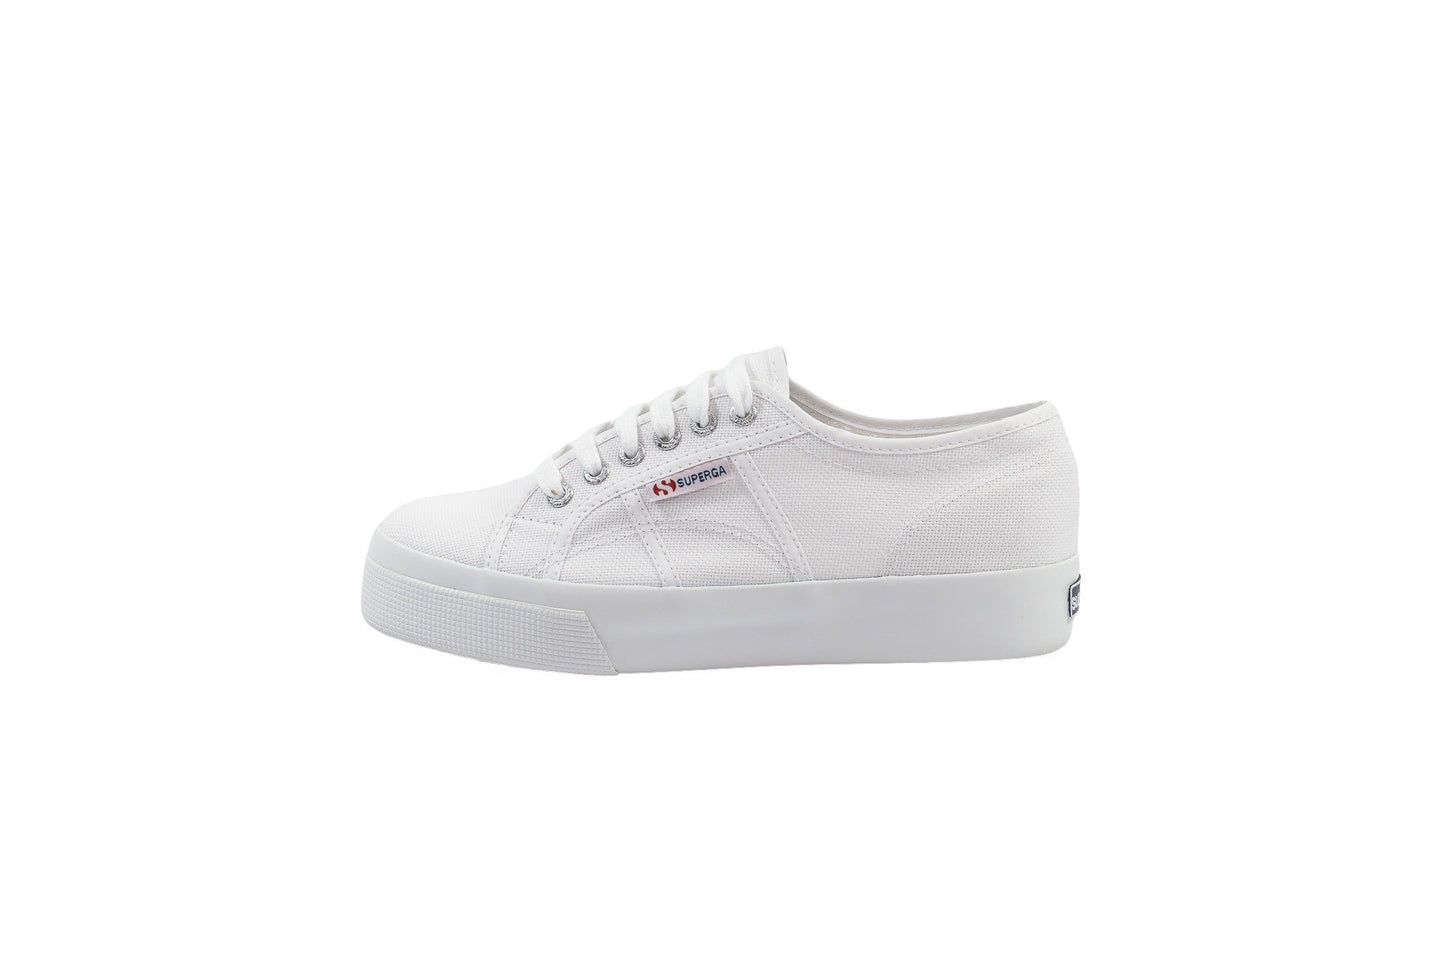 Superga 2730 COTU - Goldjunge-Store